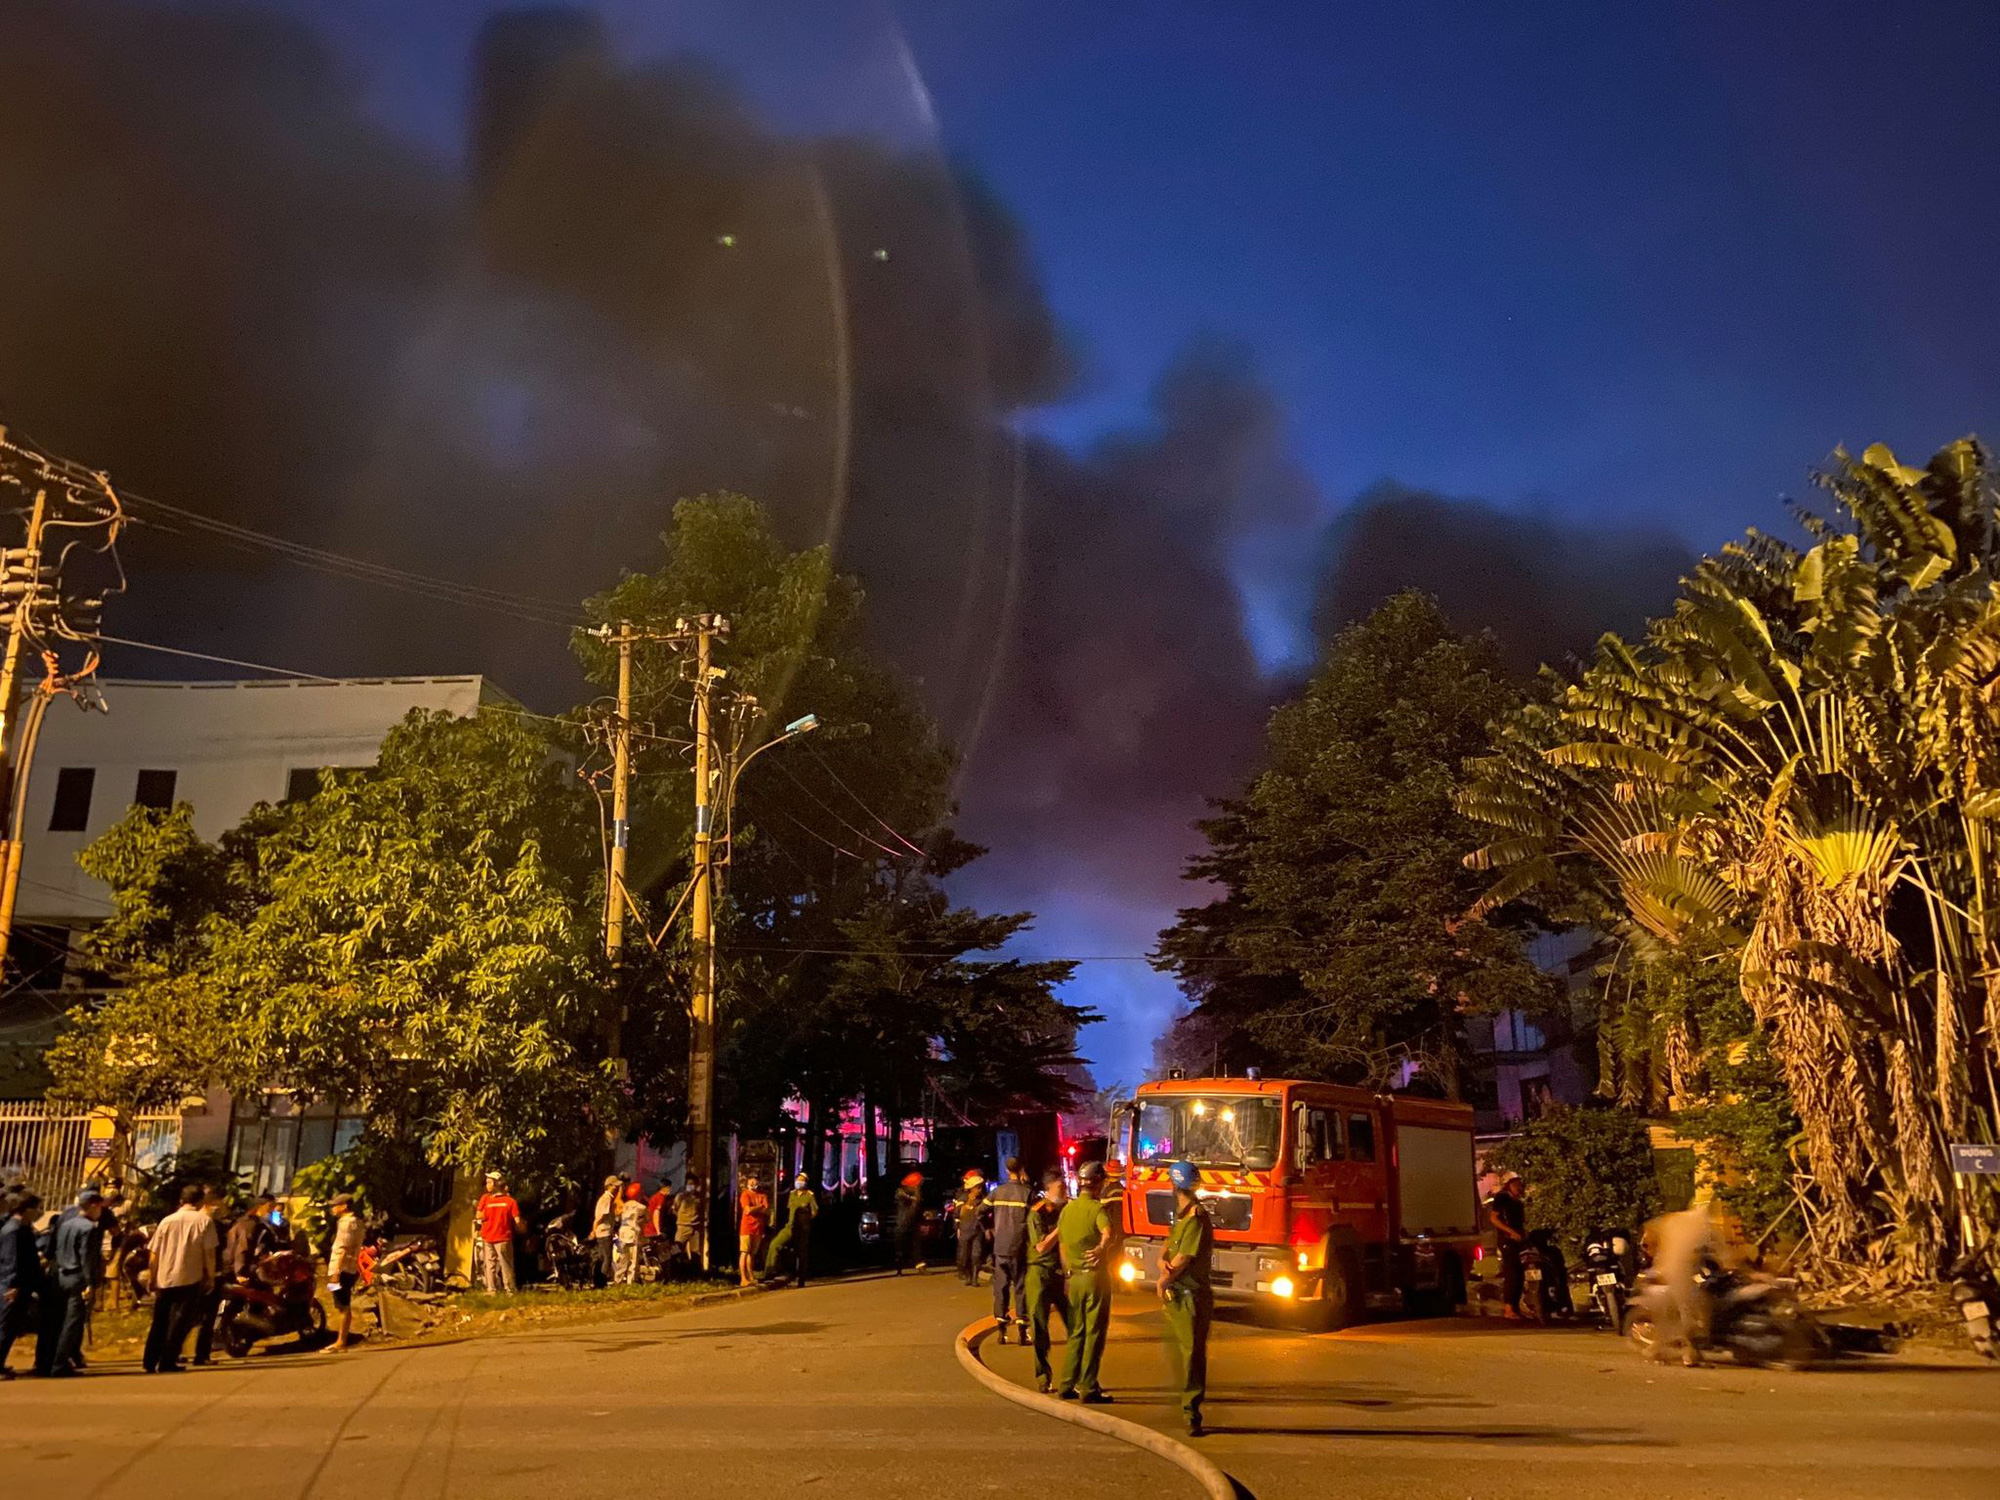 Police officers and firefighters cordon off an area where a fire broke out at a warehouse at Tan Tao Industrial Park in Binh Tan District, Ho Chi Minh City, August 26, 2020. Photo: Minh Hoa / Tuoi Tre